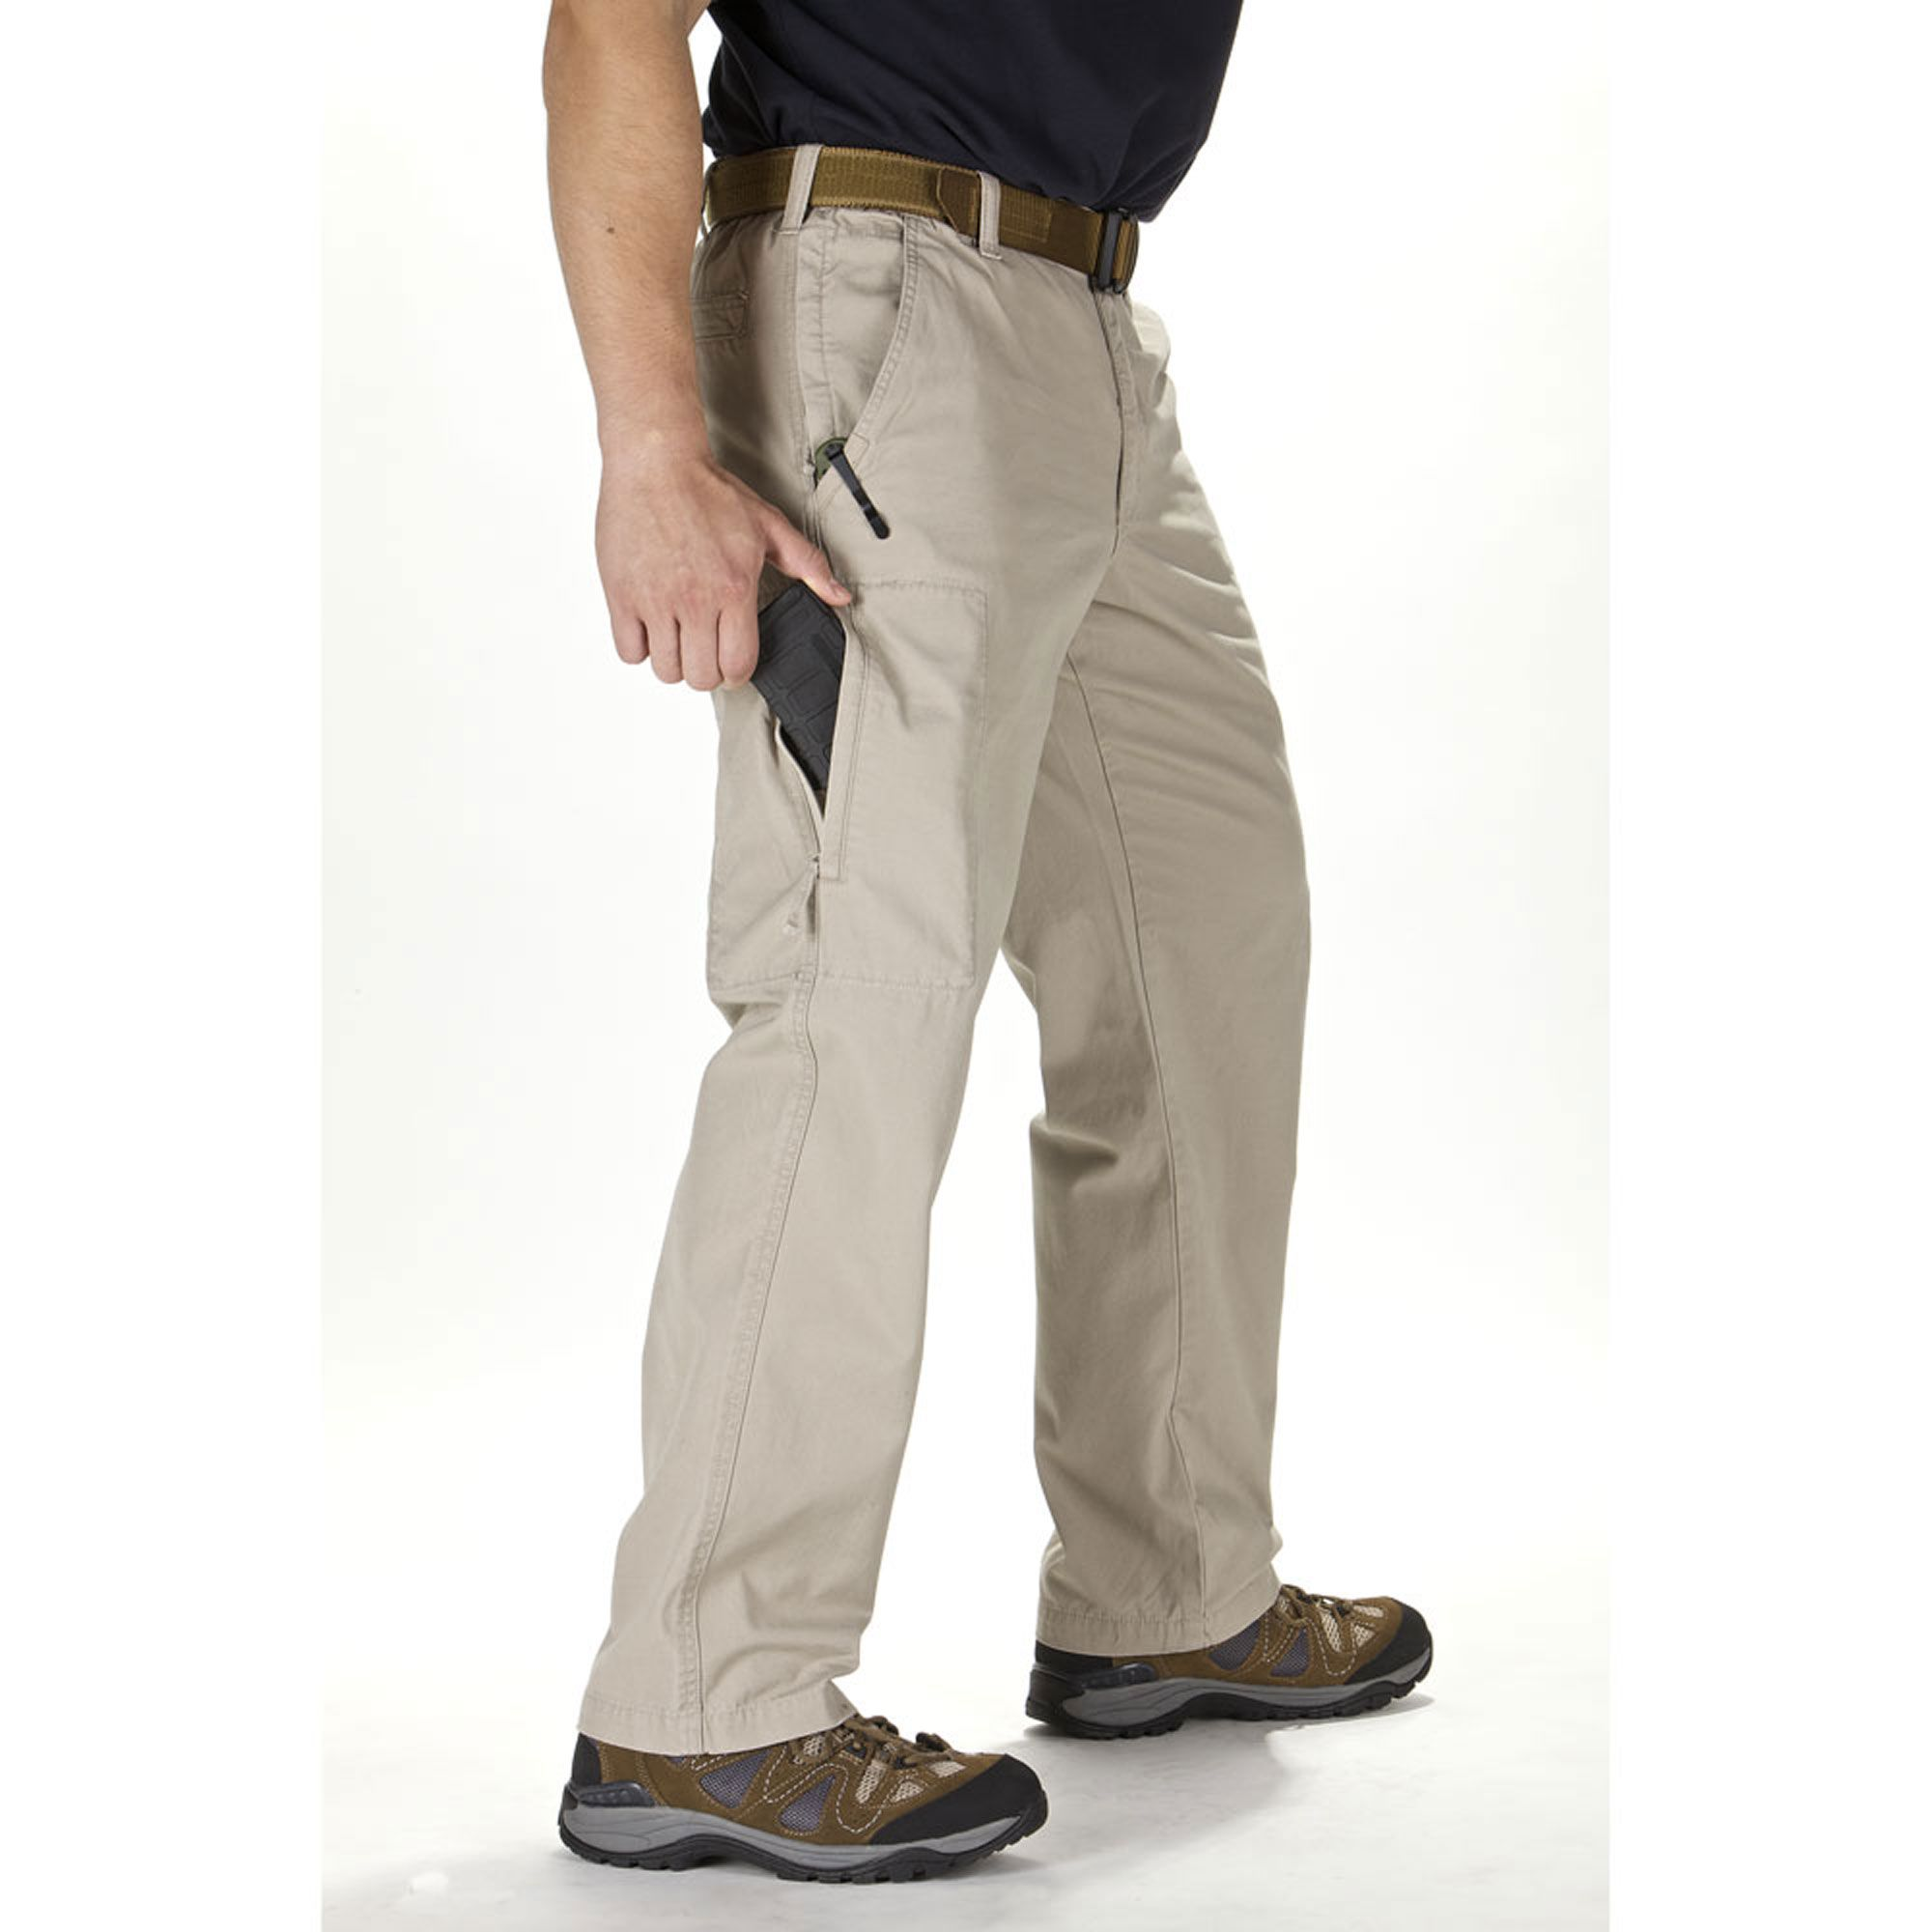 5 11 Covert Cargo Pants by 5 11 Tactical cargo pocket opening hidden in vertical leg